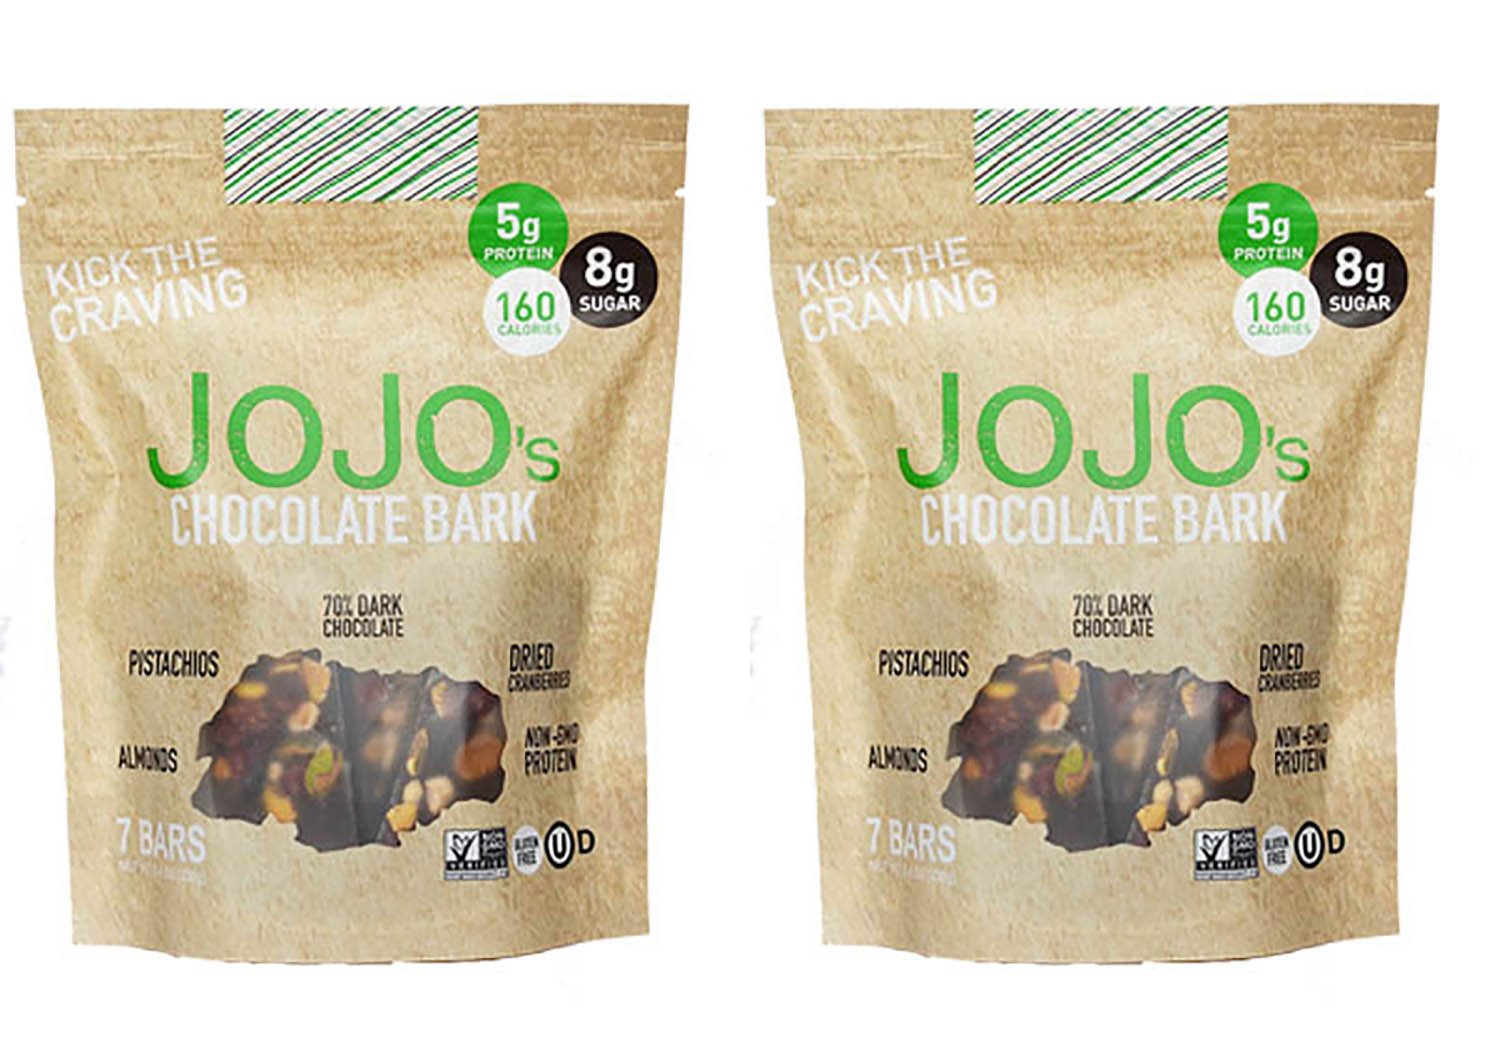 JOJO's Guilt Free Dark Chocolate Bark With All Natural Protein Raw Nuts and Fruit, NON-GMO, Gluten Free, Paleo Friendly, 1.2 Ounce Bars, 14 Count(Two Week Supply- 16 oz)